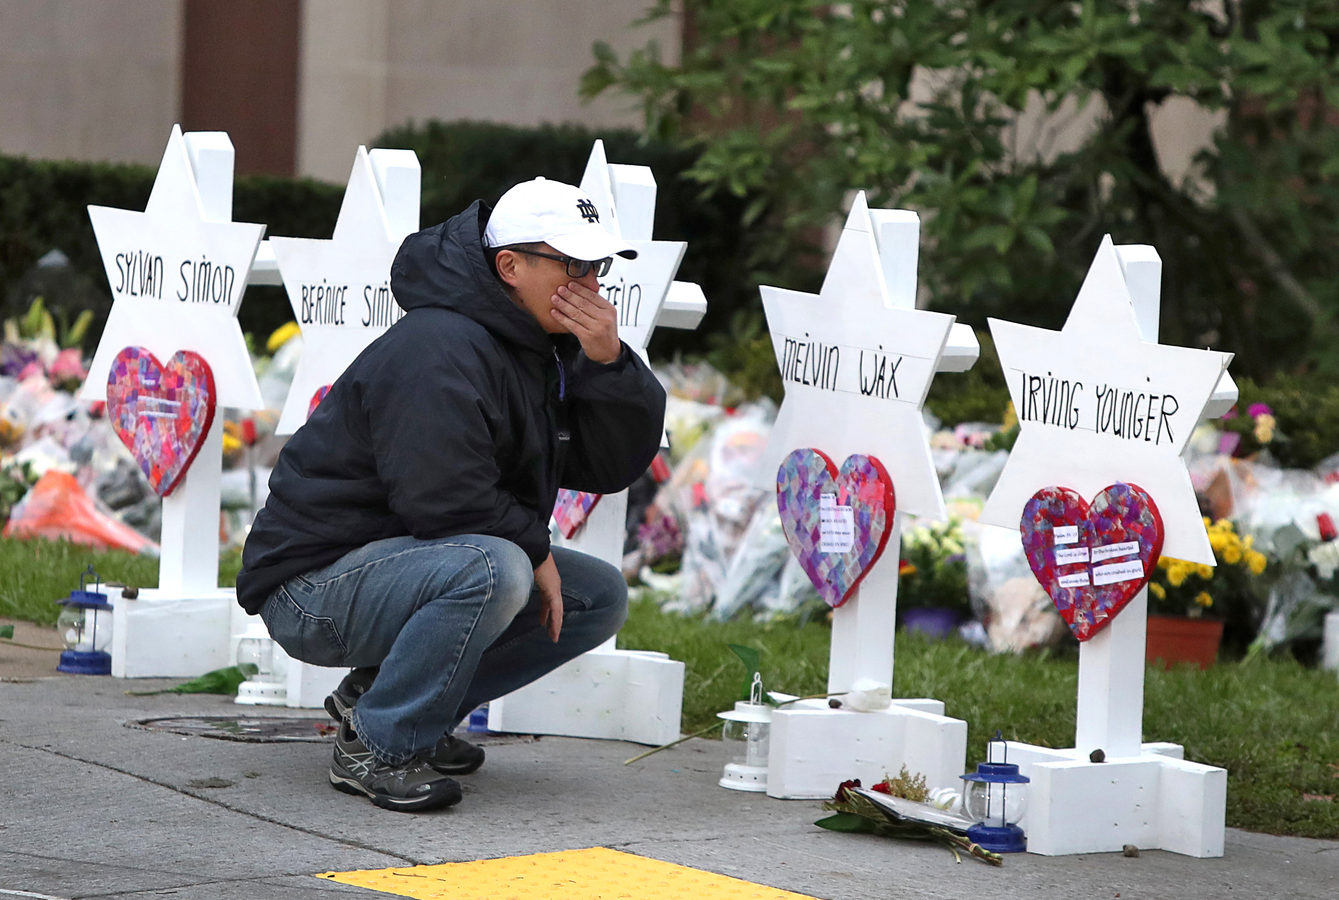 A young man on Oct. 29 at a makeshift memorial outside the Tree of Life synagogue in Pittsburgh. (CNS photo/Cathal McNaughton, Reuters)